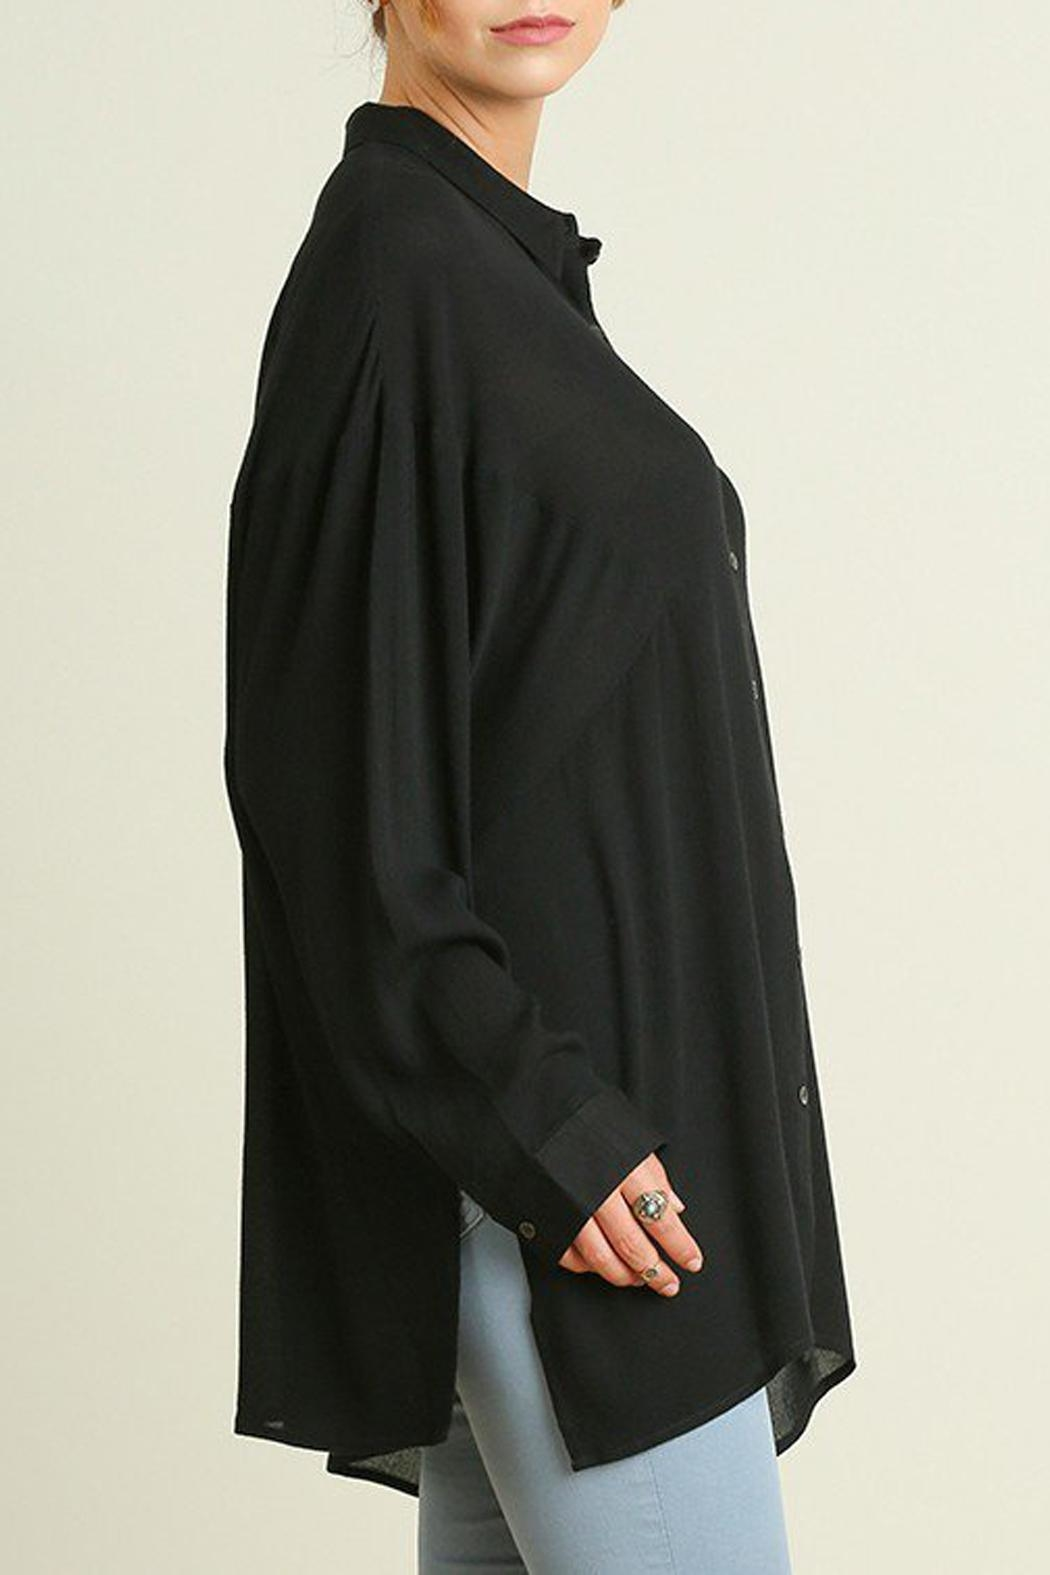 Umgee USA Black Blouse Side-Slit - Main Image